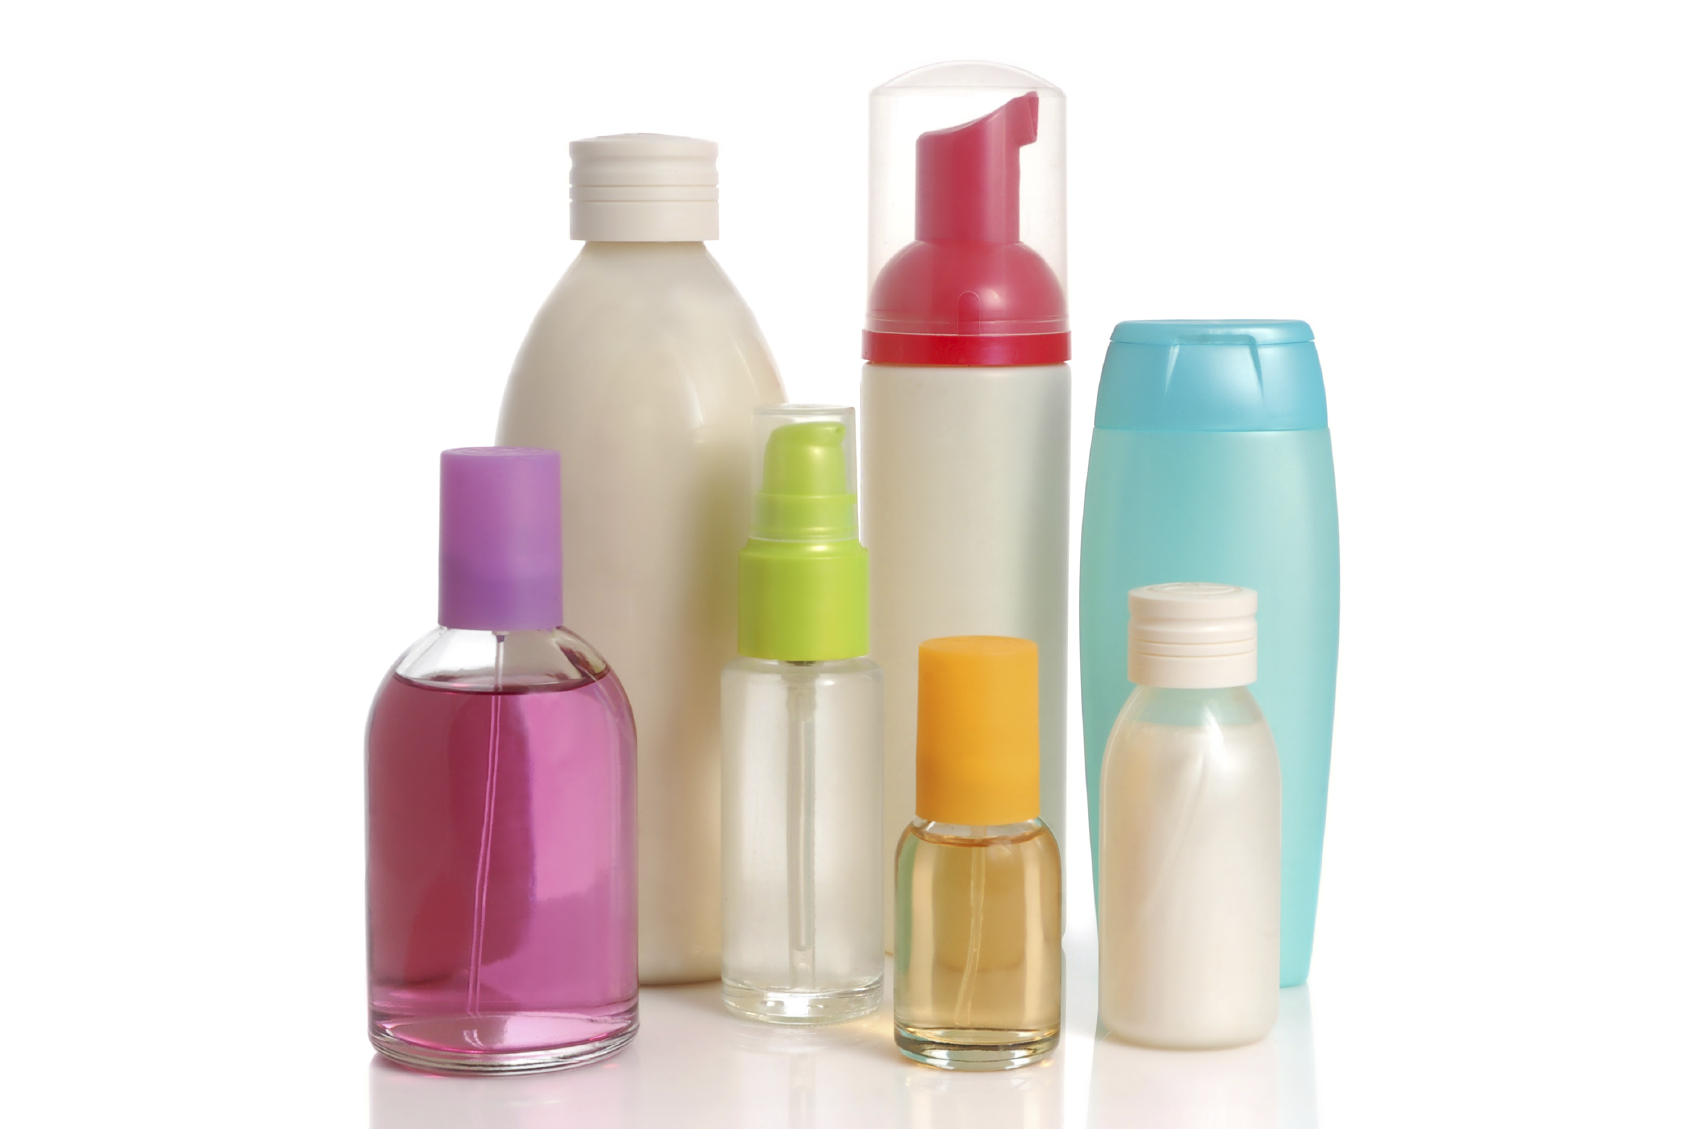 Not all cosmetics ingredients are regulated. And 60% of what you use on your body ends up in your blood. Here are five skin care products hiding deadly chemicals.